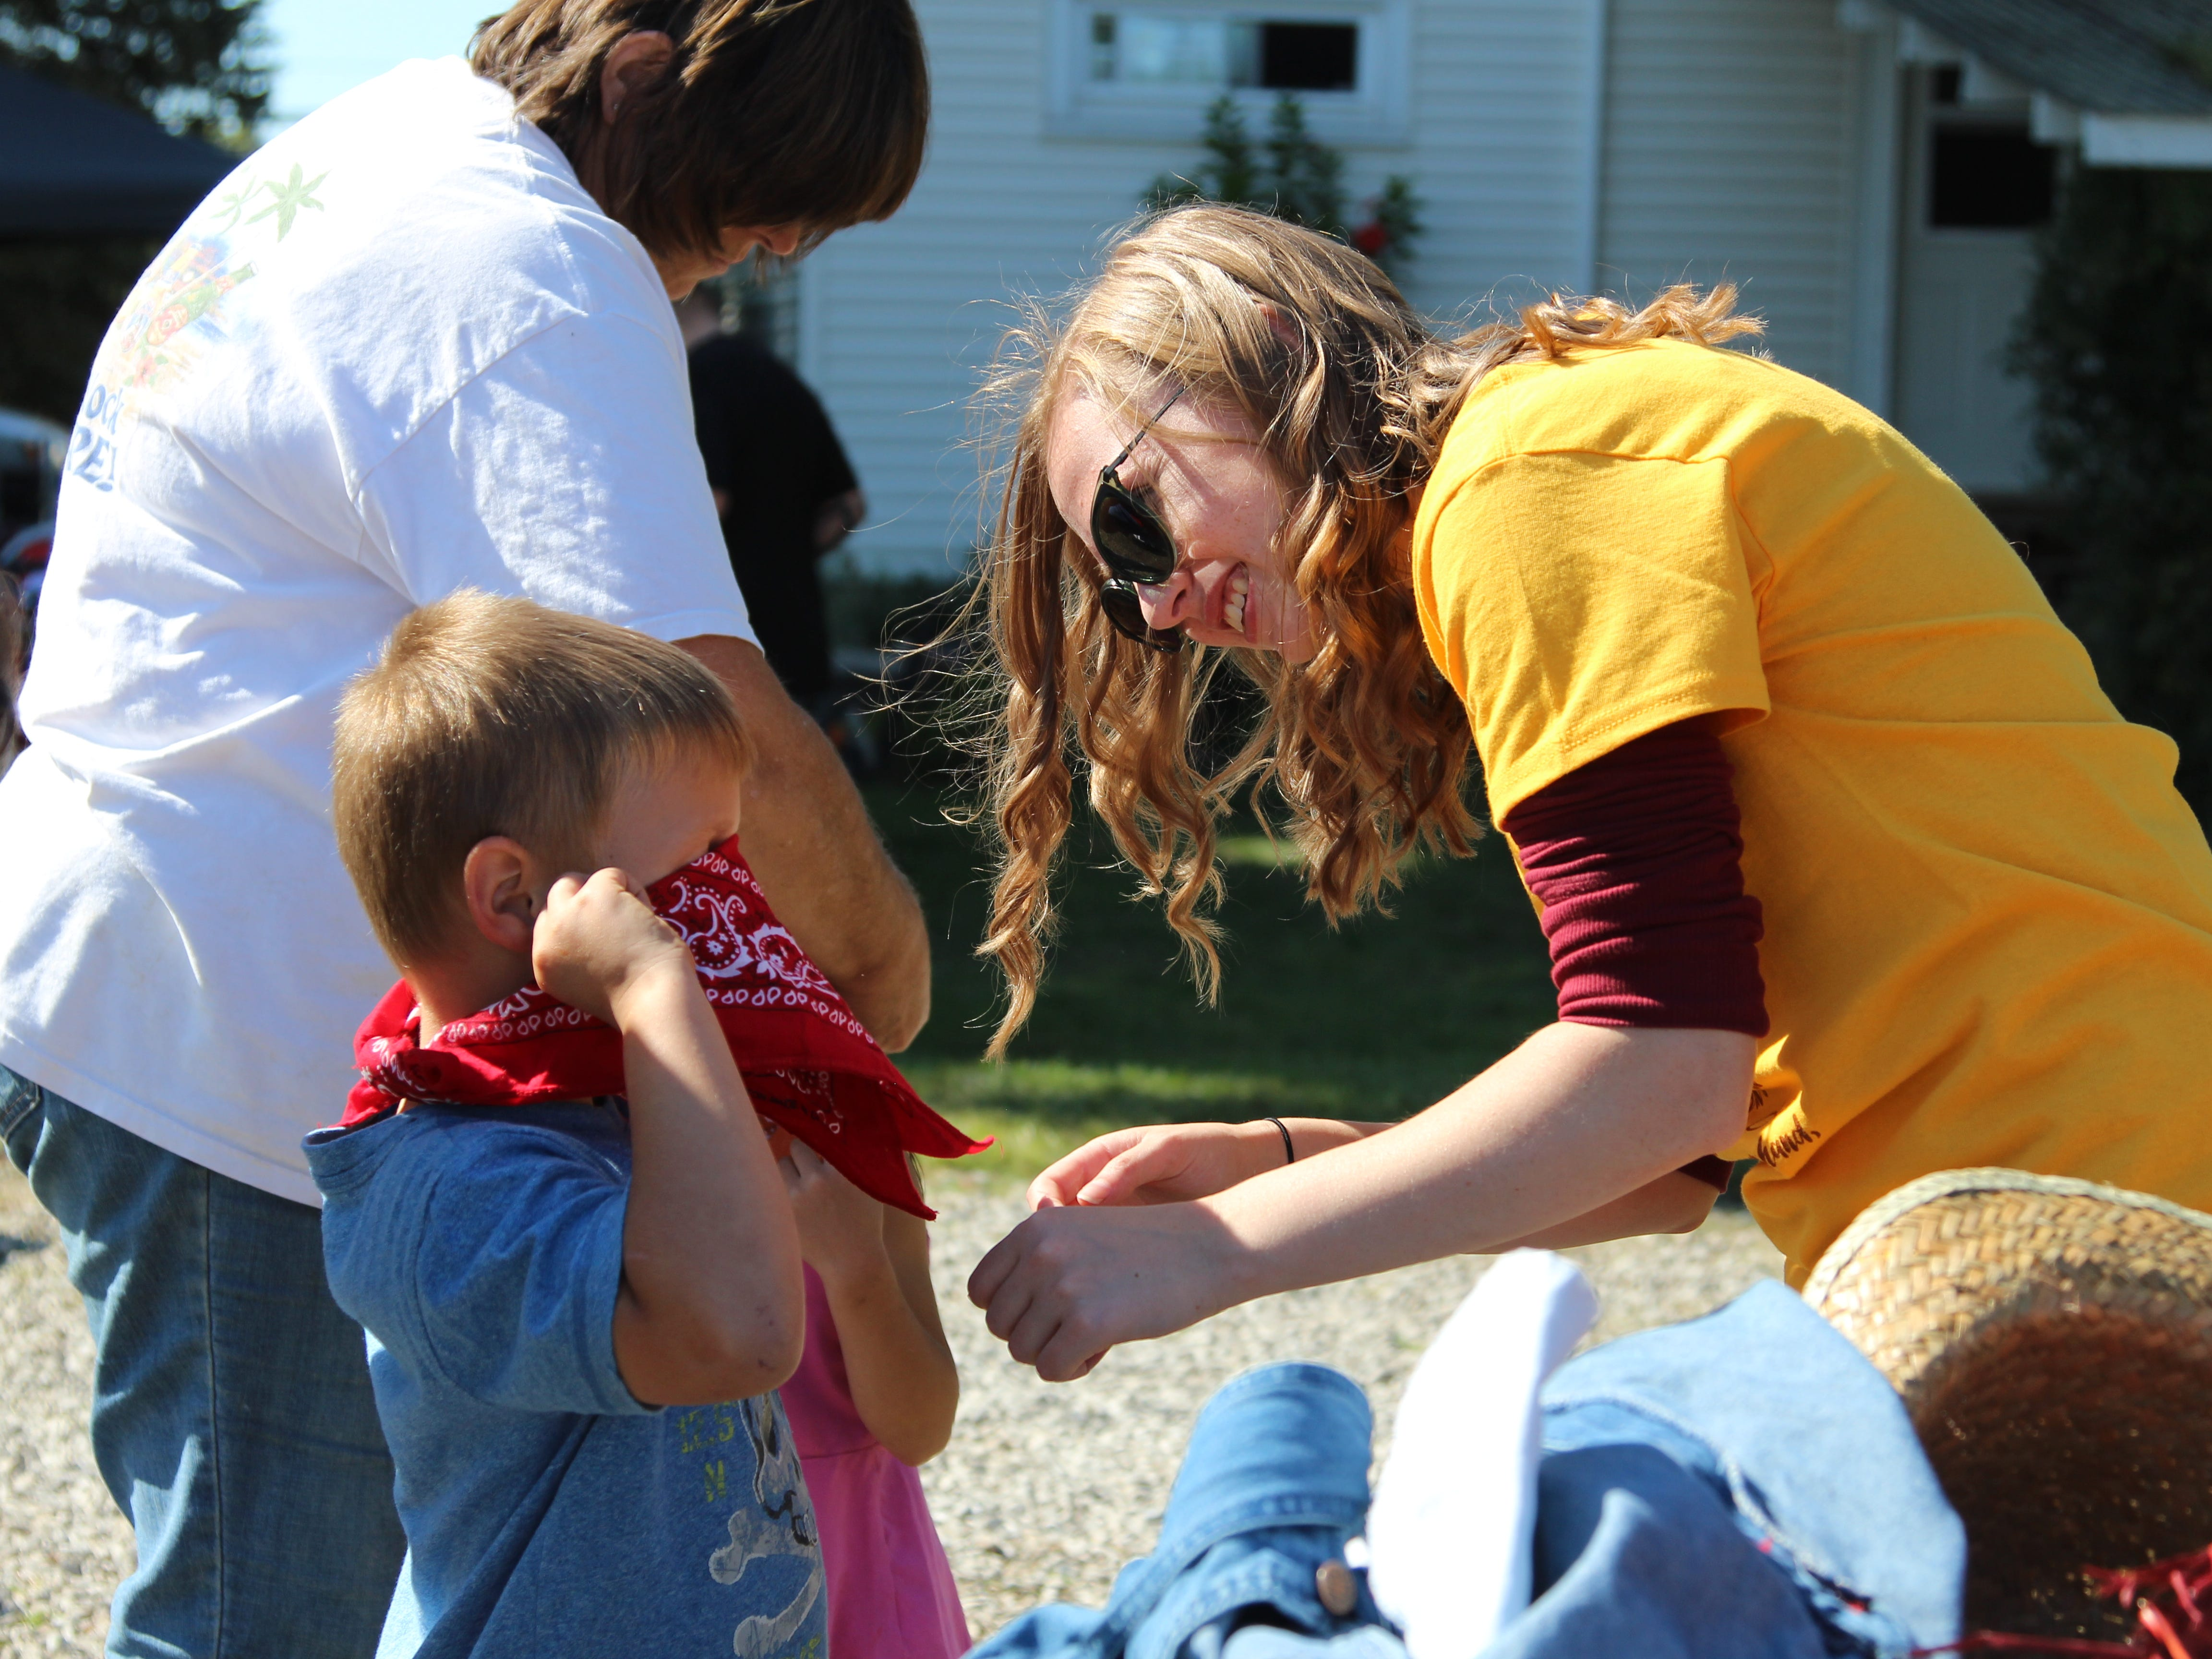 Alexis Teal, a volunteer at Applefest, helps Max Wilcox, 5, put on a bandana. Applefest, the annual fall festival at Lawrence Orchards just outside Marion, took place Saturday.